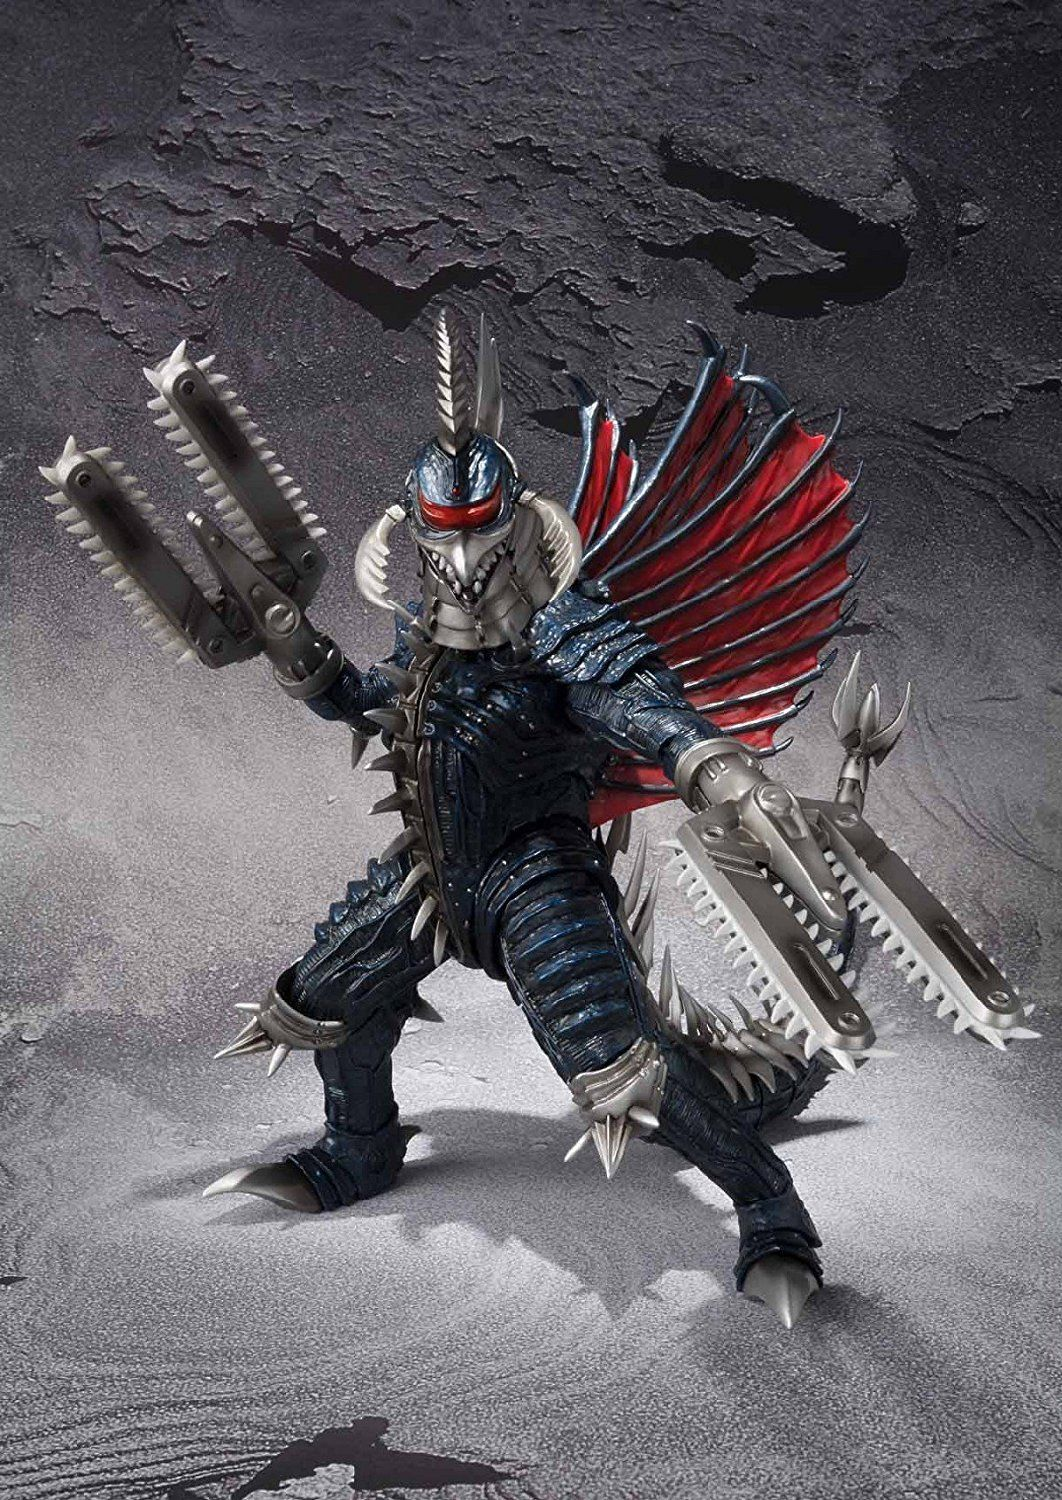 Amazon.com: Bandai Tamashii Nations S.H.MonsterArts Gigan ...